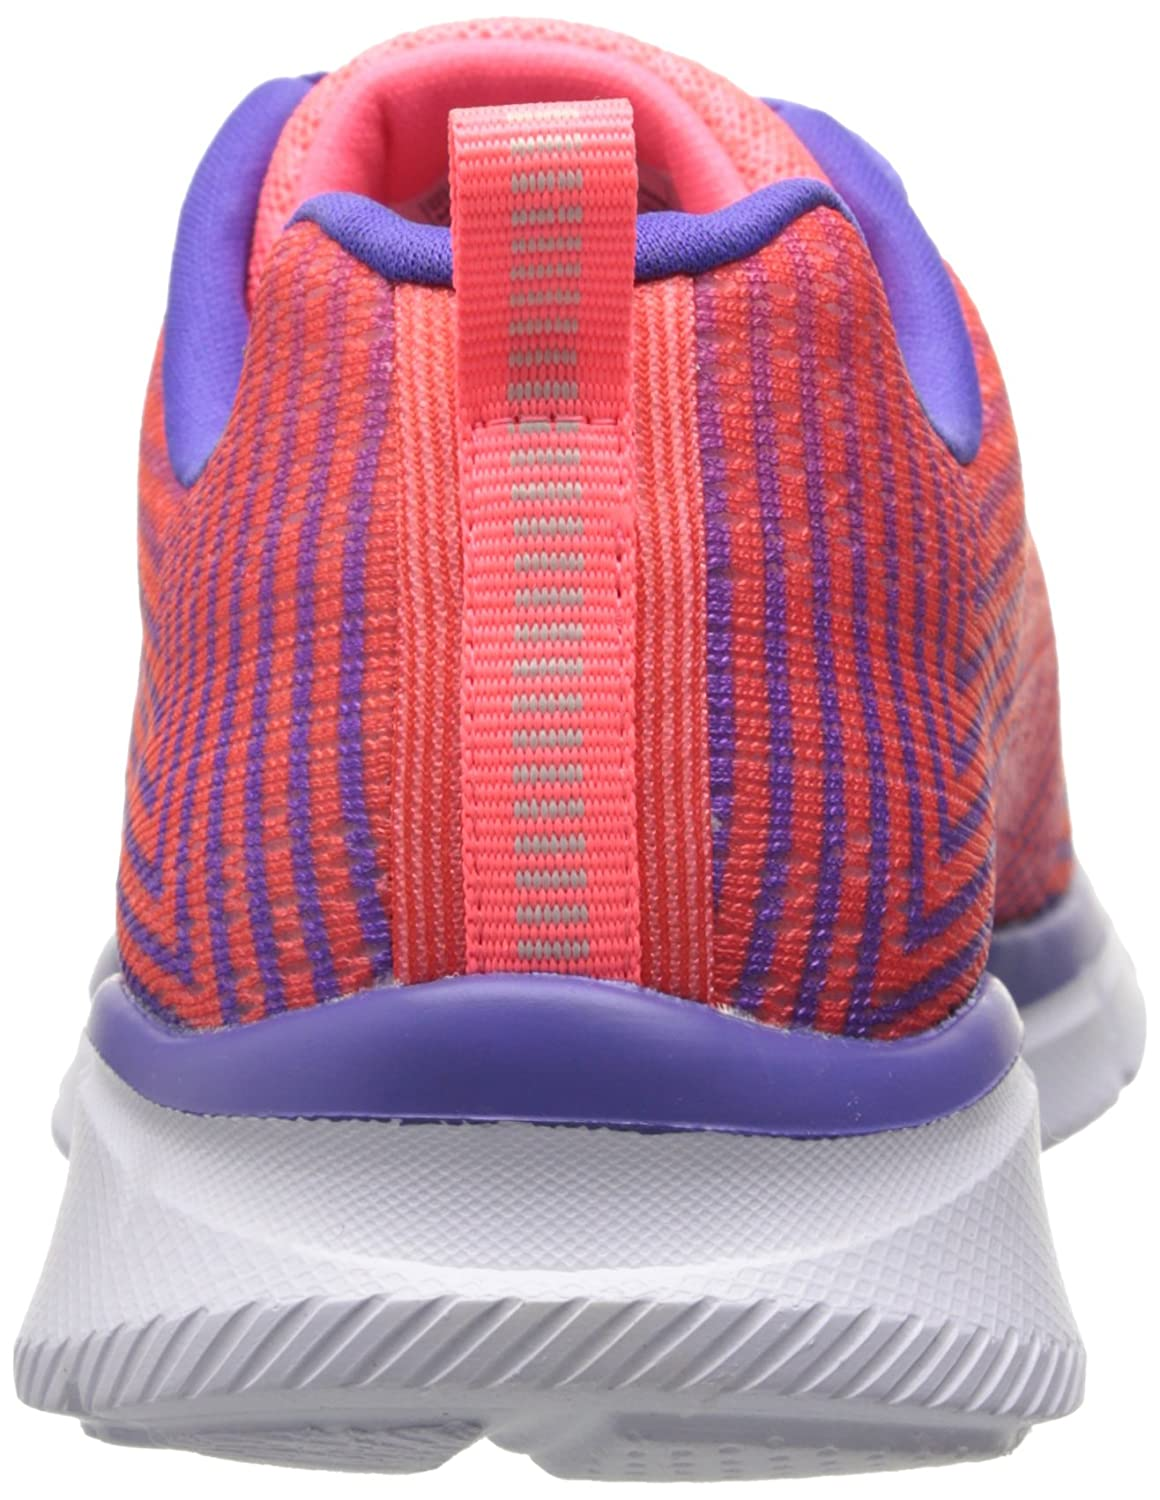 Little Kid//Big Kid Skechers Kids Equalizer Expect Miracles Sneaker 81794L